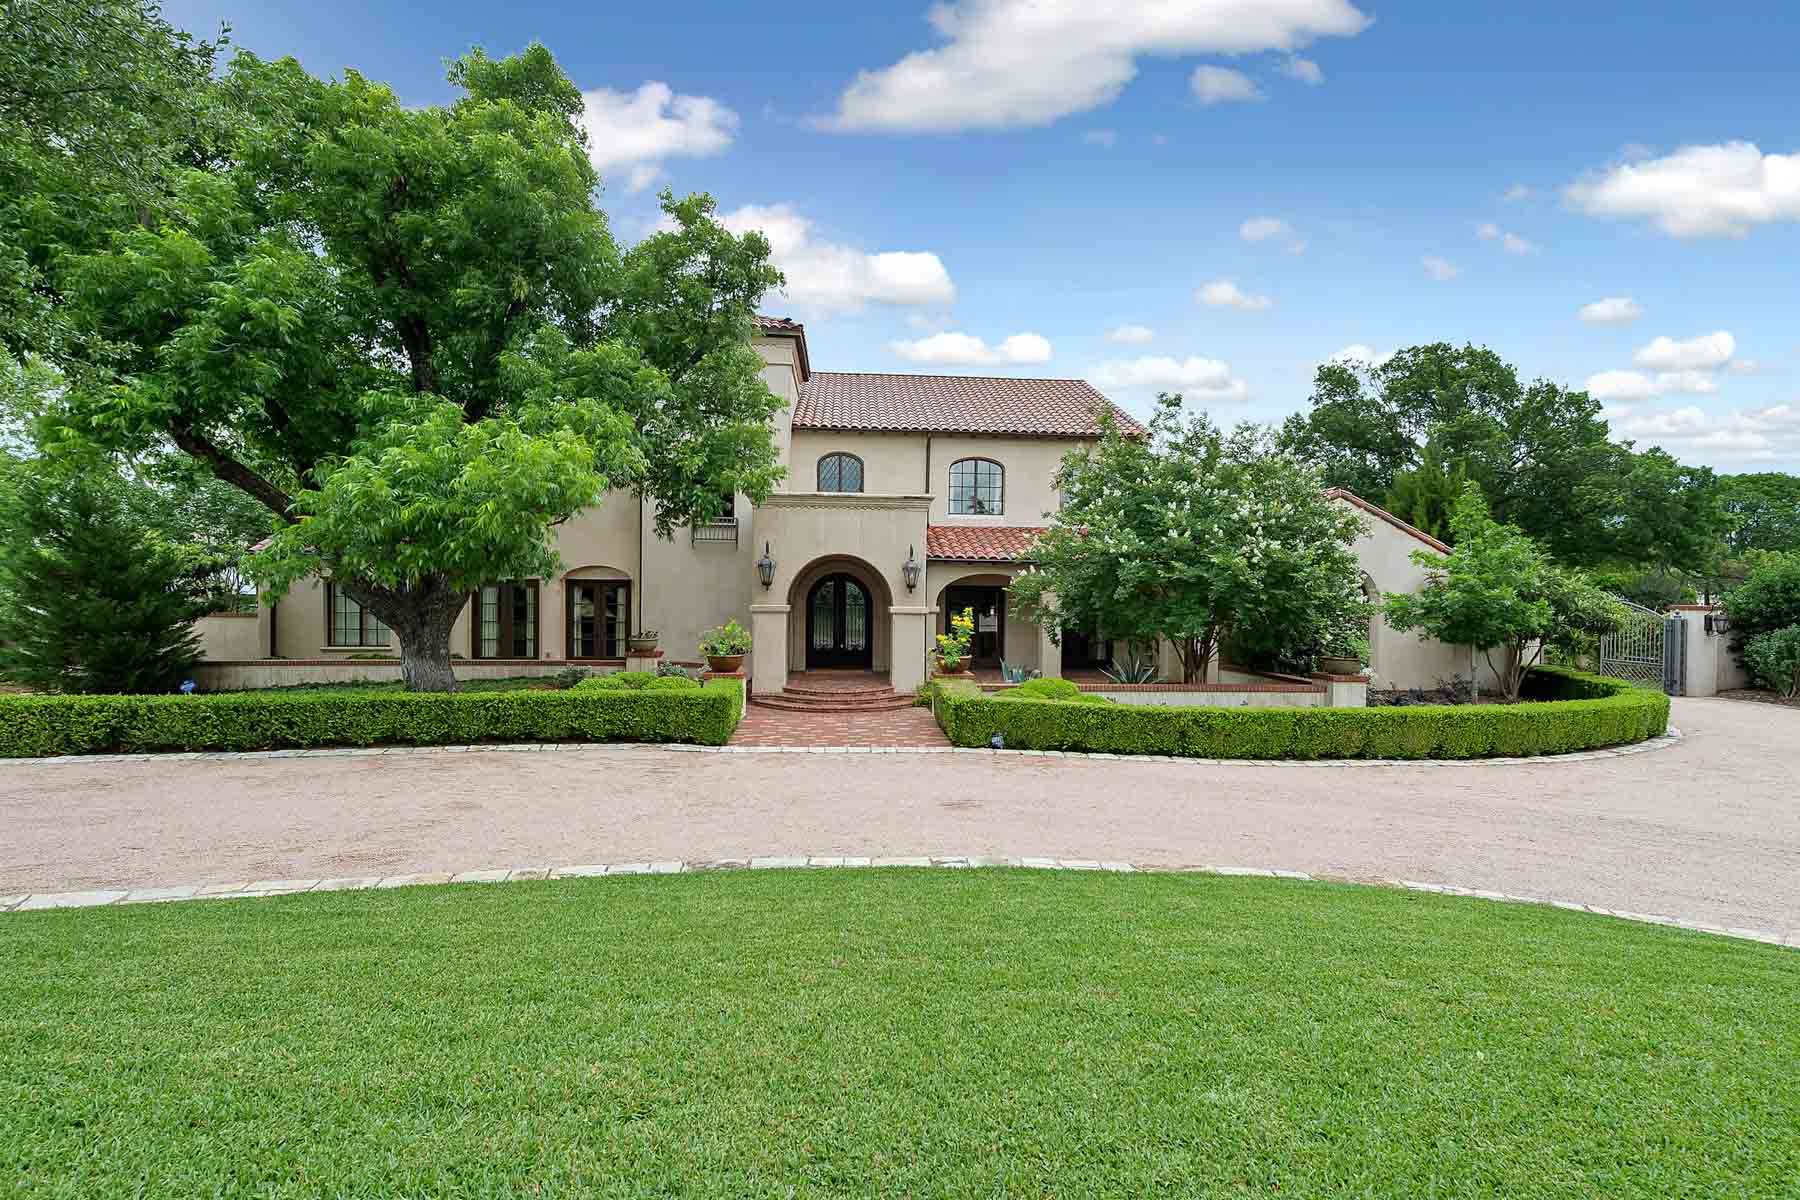 단독 가정 주택 용 매매 에 Beautiful Spanish Inspired Fort Worth Home 2017 Four Oaks Fort Worth, 텍사스, 76107 미국